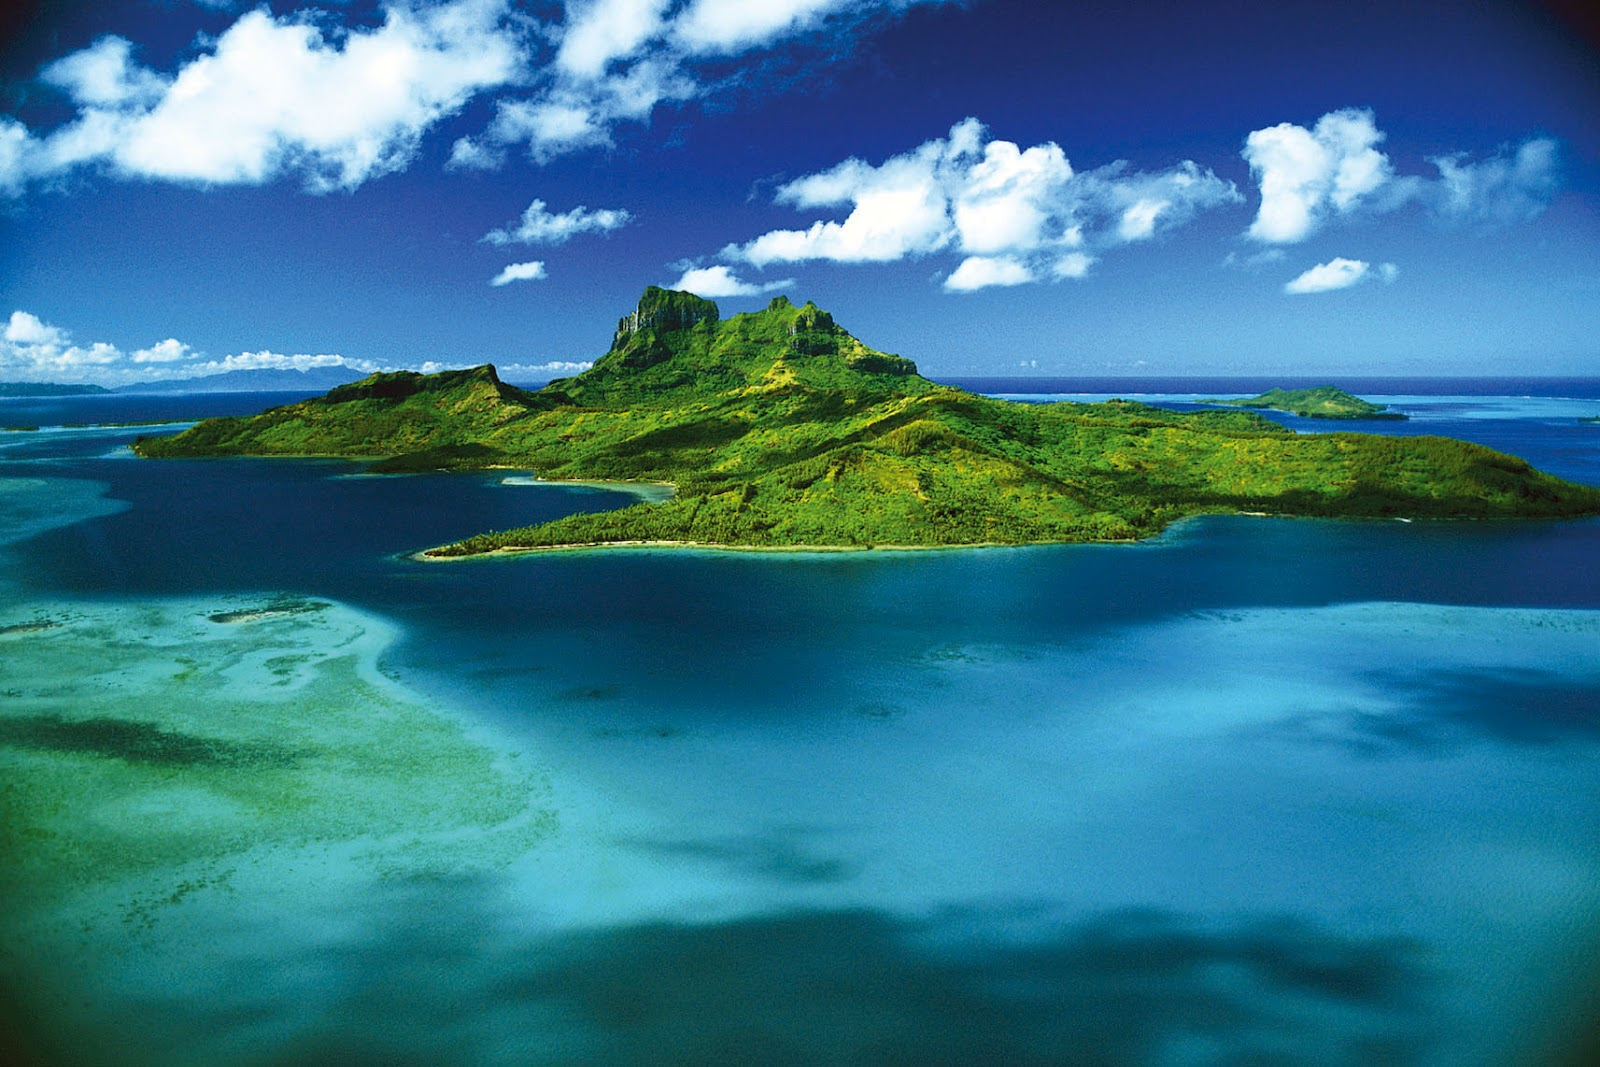 A Stunning View Of Bora From The Air Where You Can See Lofty Extinct Volcanoes Mount Pahia And Otemanu In Centre Island Which